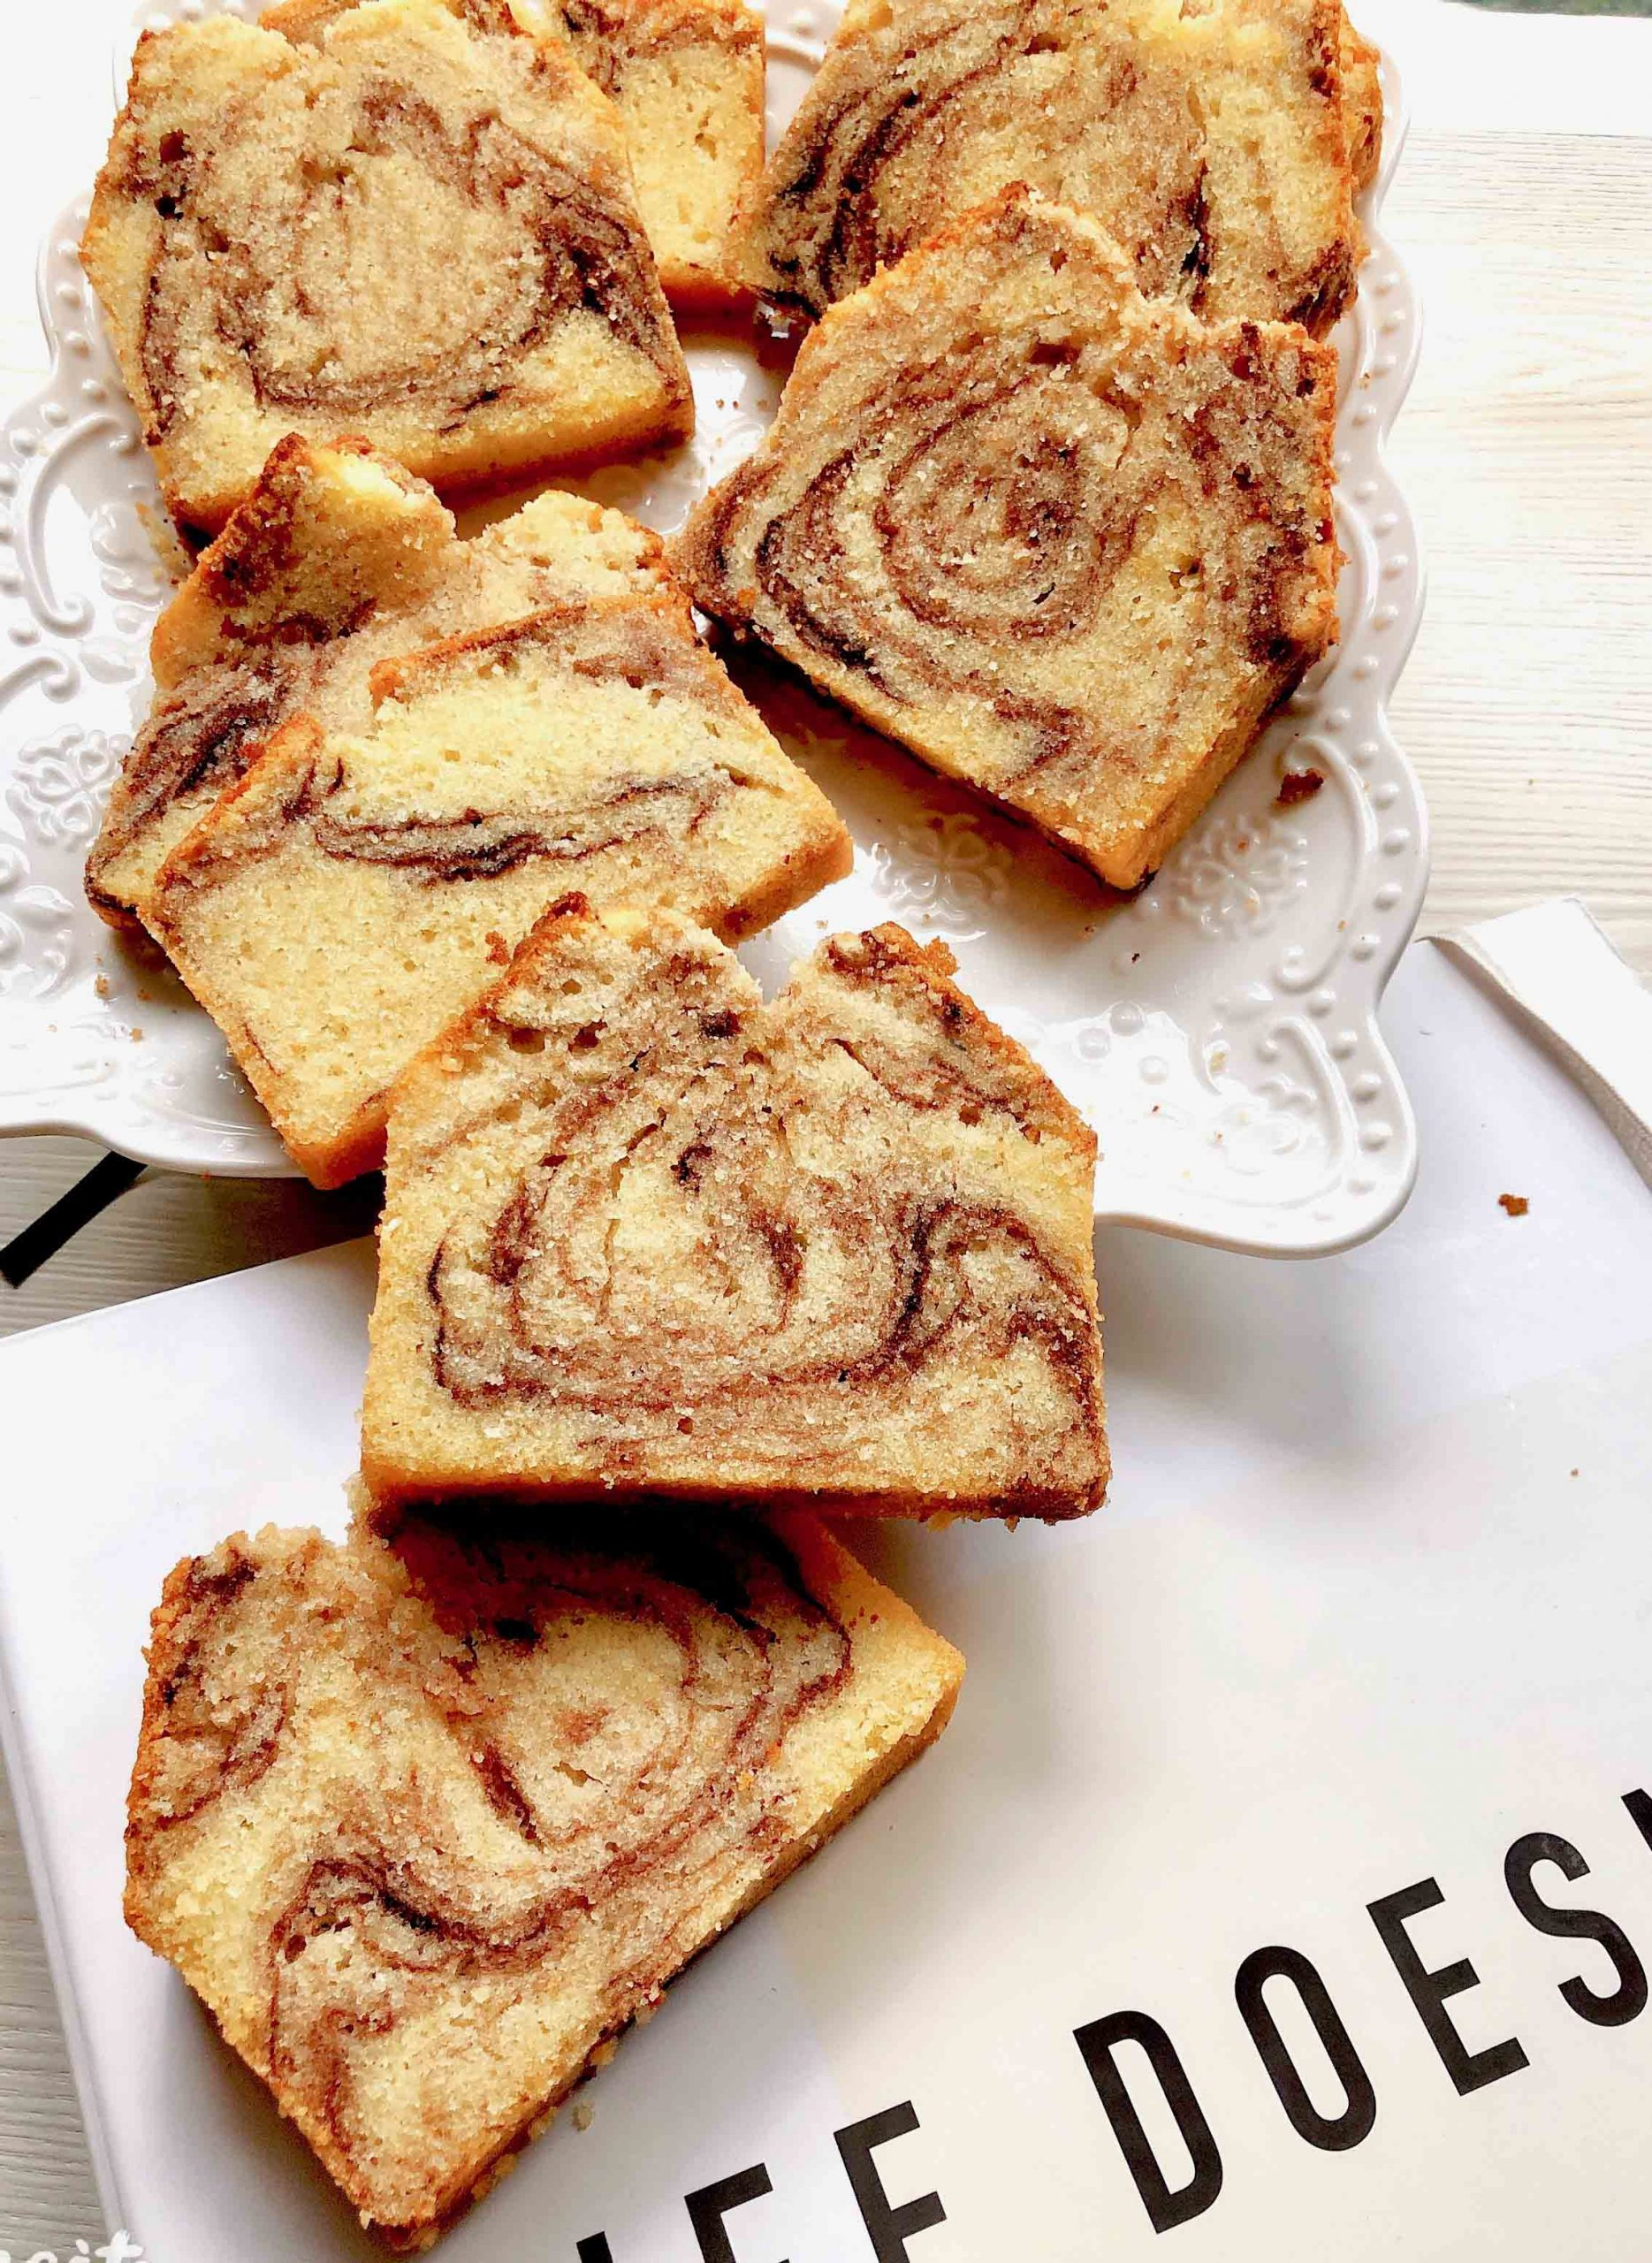 the perfect marble swirl cake 完美的云石蛋糕